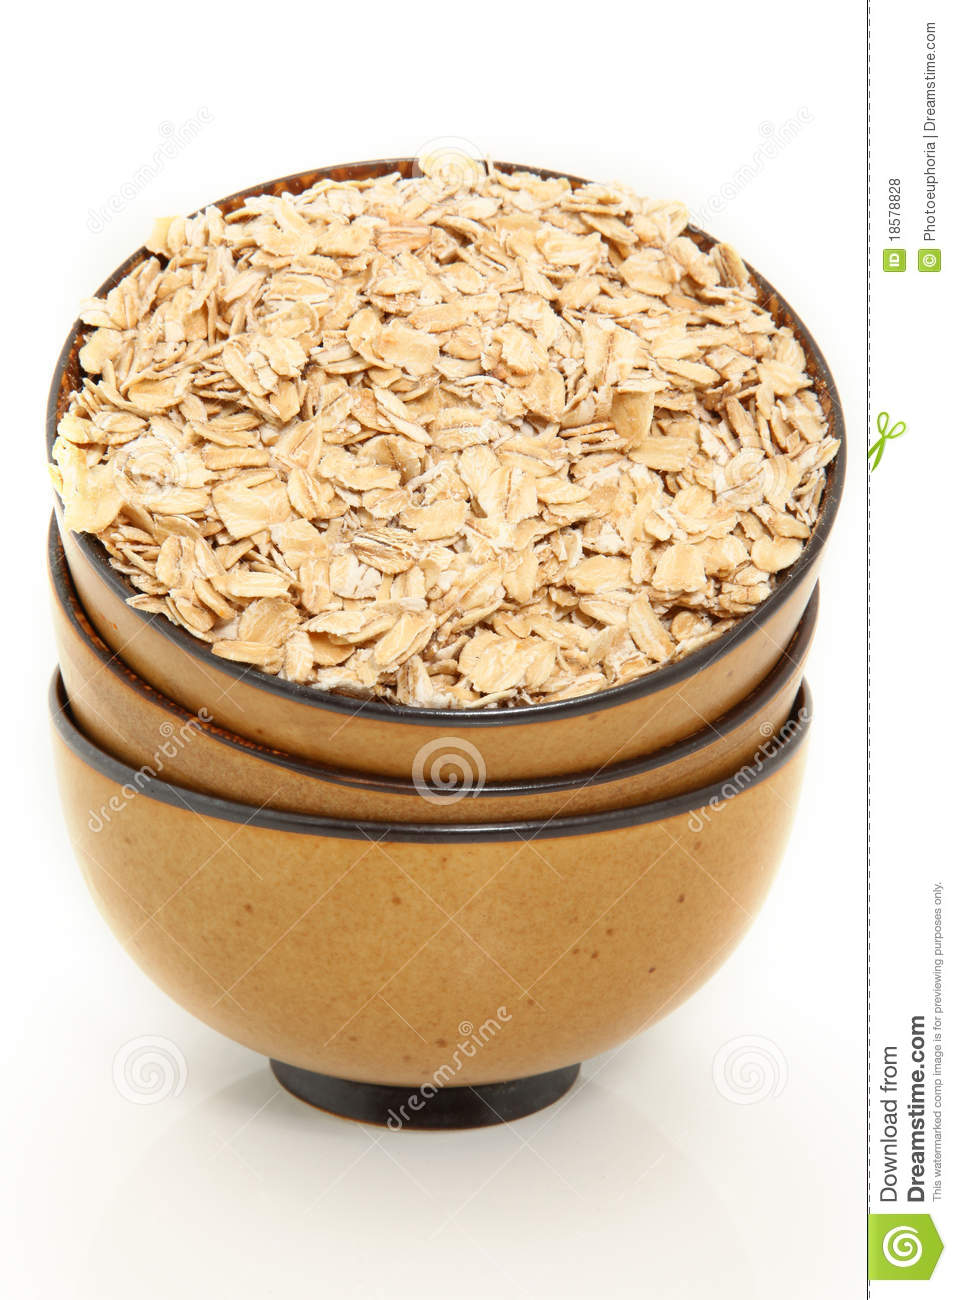 Bowl Of Oatmeal Clipart Whole Oats In Bowl